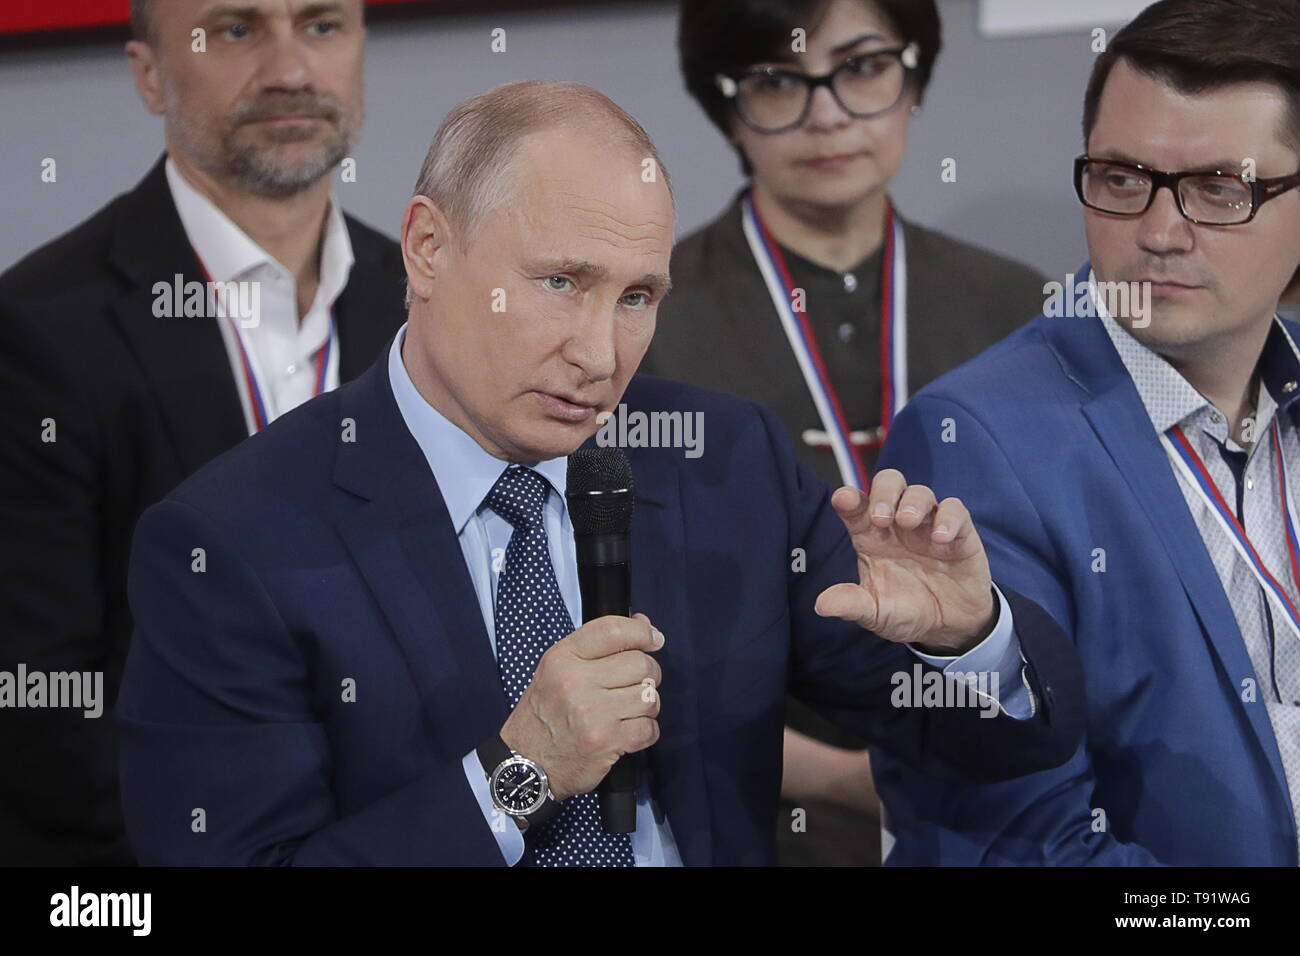 Sochi, Russia. 16th May, 2019. SOCHI, RUSSIA - MAY 16, 2019: Russia's President Vladimir Putin (front) speaks at the plenary meeting at the Independent Local and Regional Media Forum held by the All-Russian People's Front. Mikhail Metzel/TASS Credit: ITAR-TASS News Agency/Alamy Live News - Stock Image